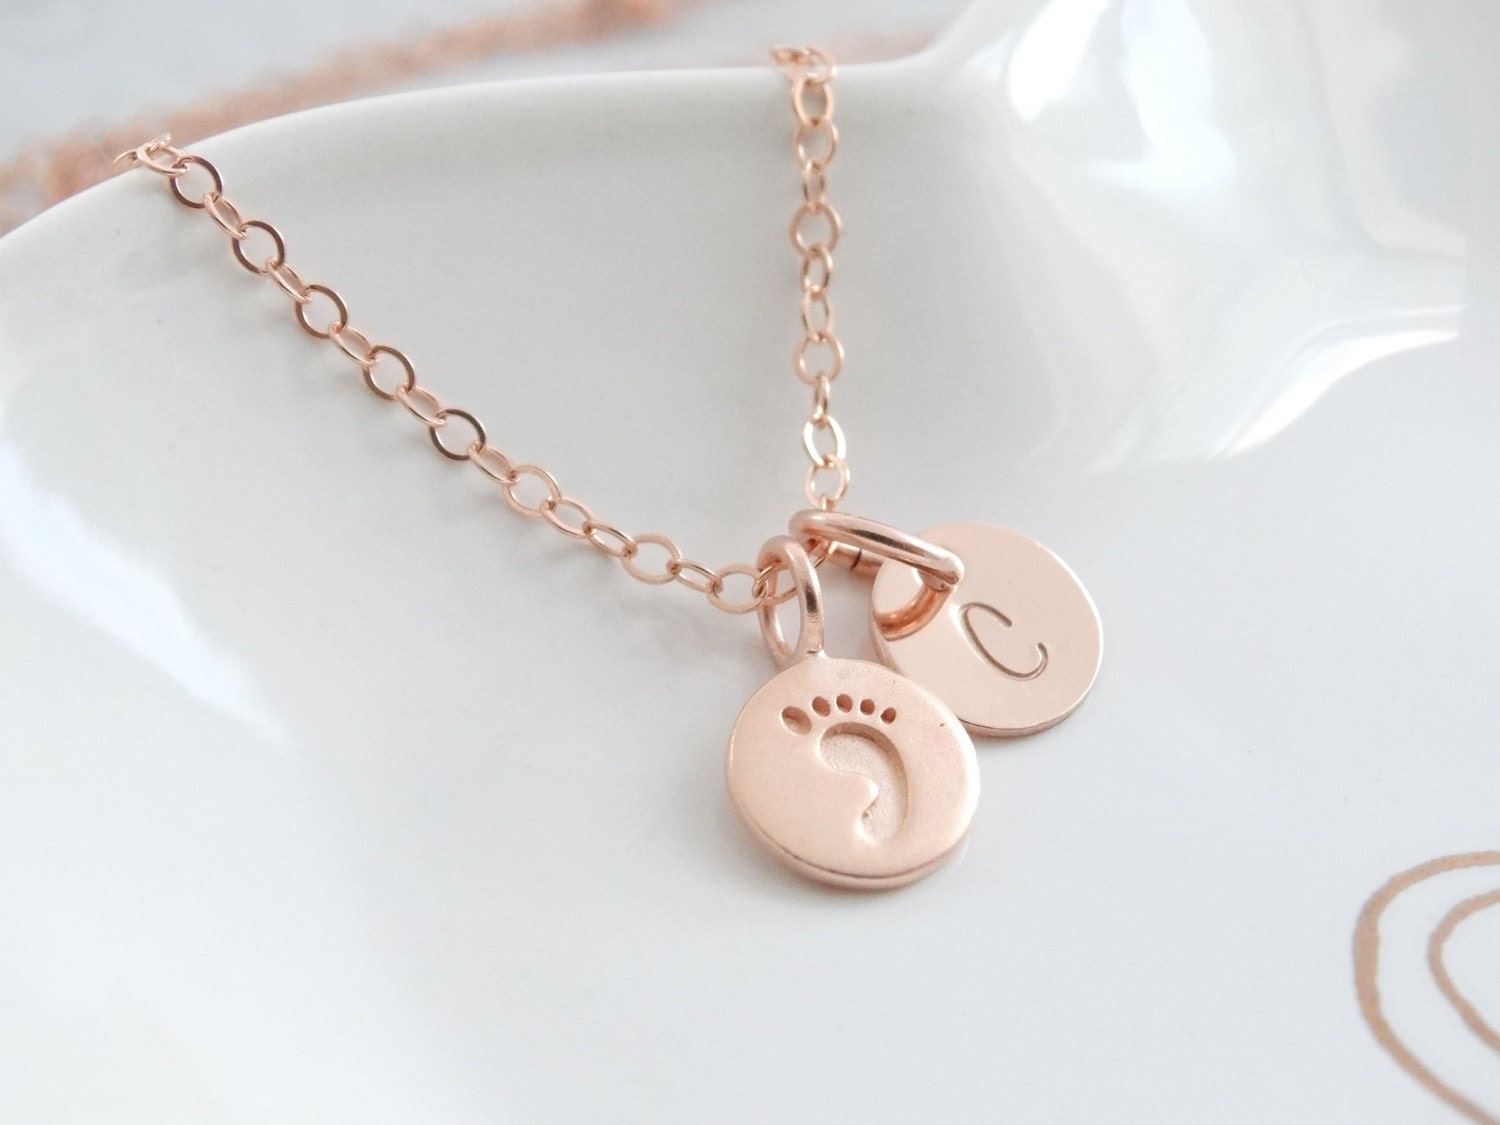 New baby gift new mom gift necklace baby footprint necklace new baby gift new mom gift necklace baby footprint necklace personalized baby gift rose gold necklace mothers necklace foot print necklace aloadofball Choice Image